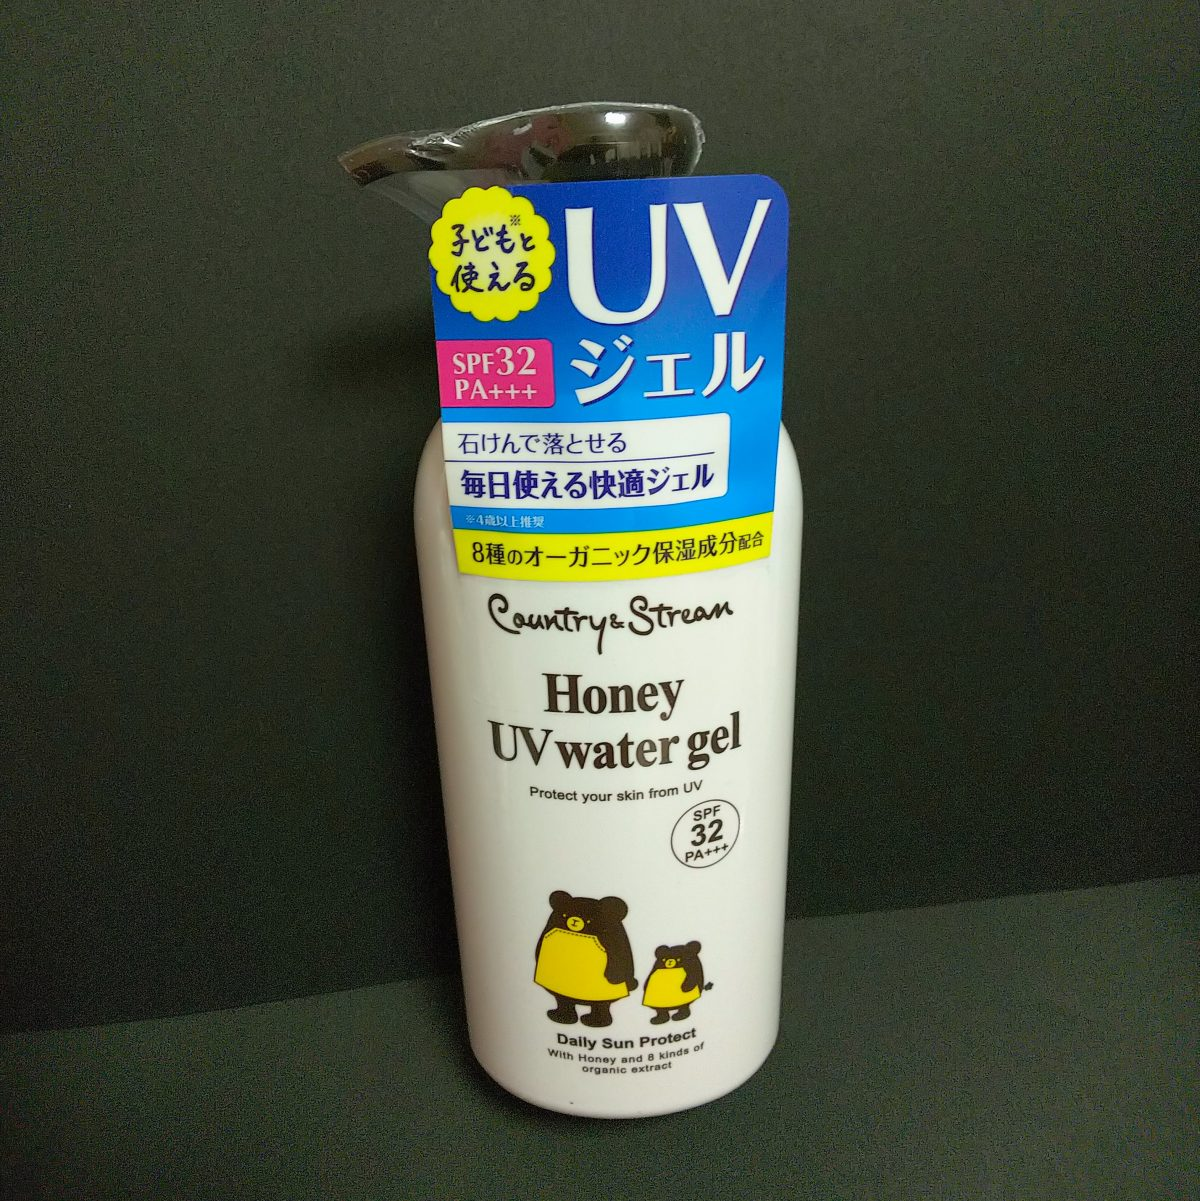 冬でも紫外線対策!Country &Stream Honey UV Water Gel